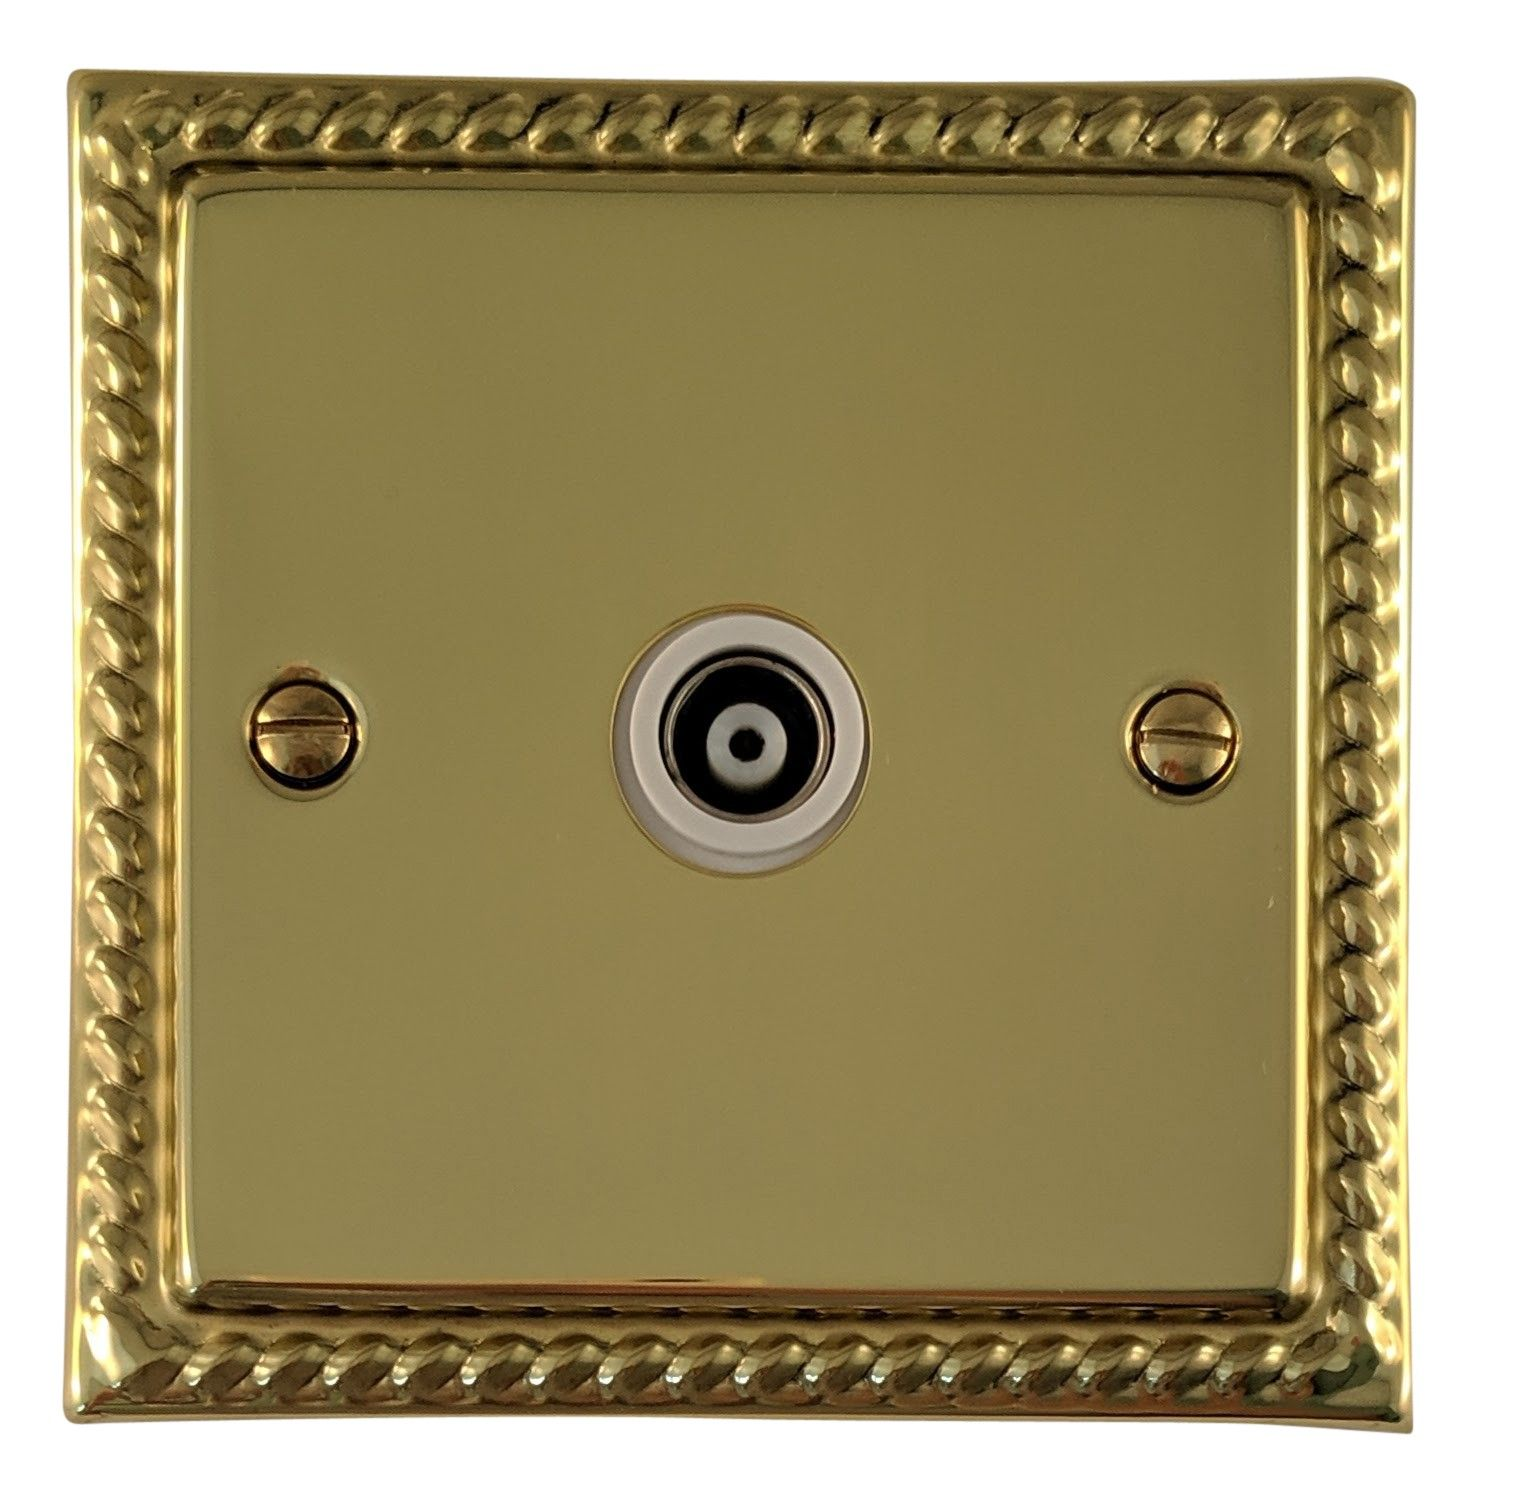 G&H MB35W Monarch Roped Polished Brass 1 Gang TV Coax Socket Point